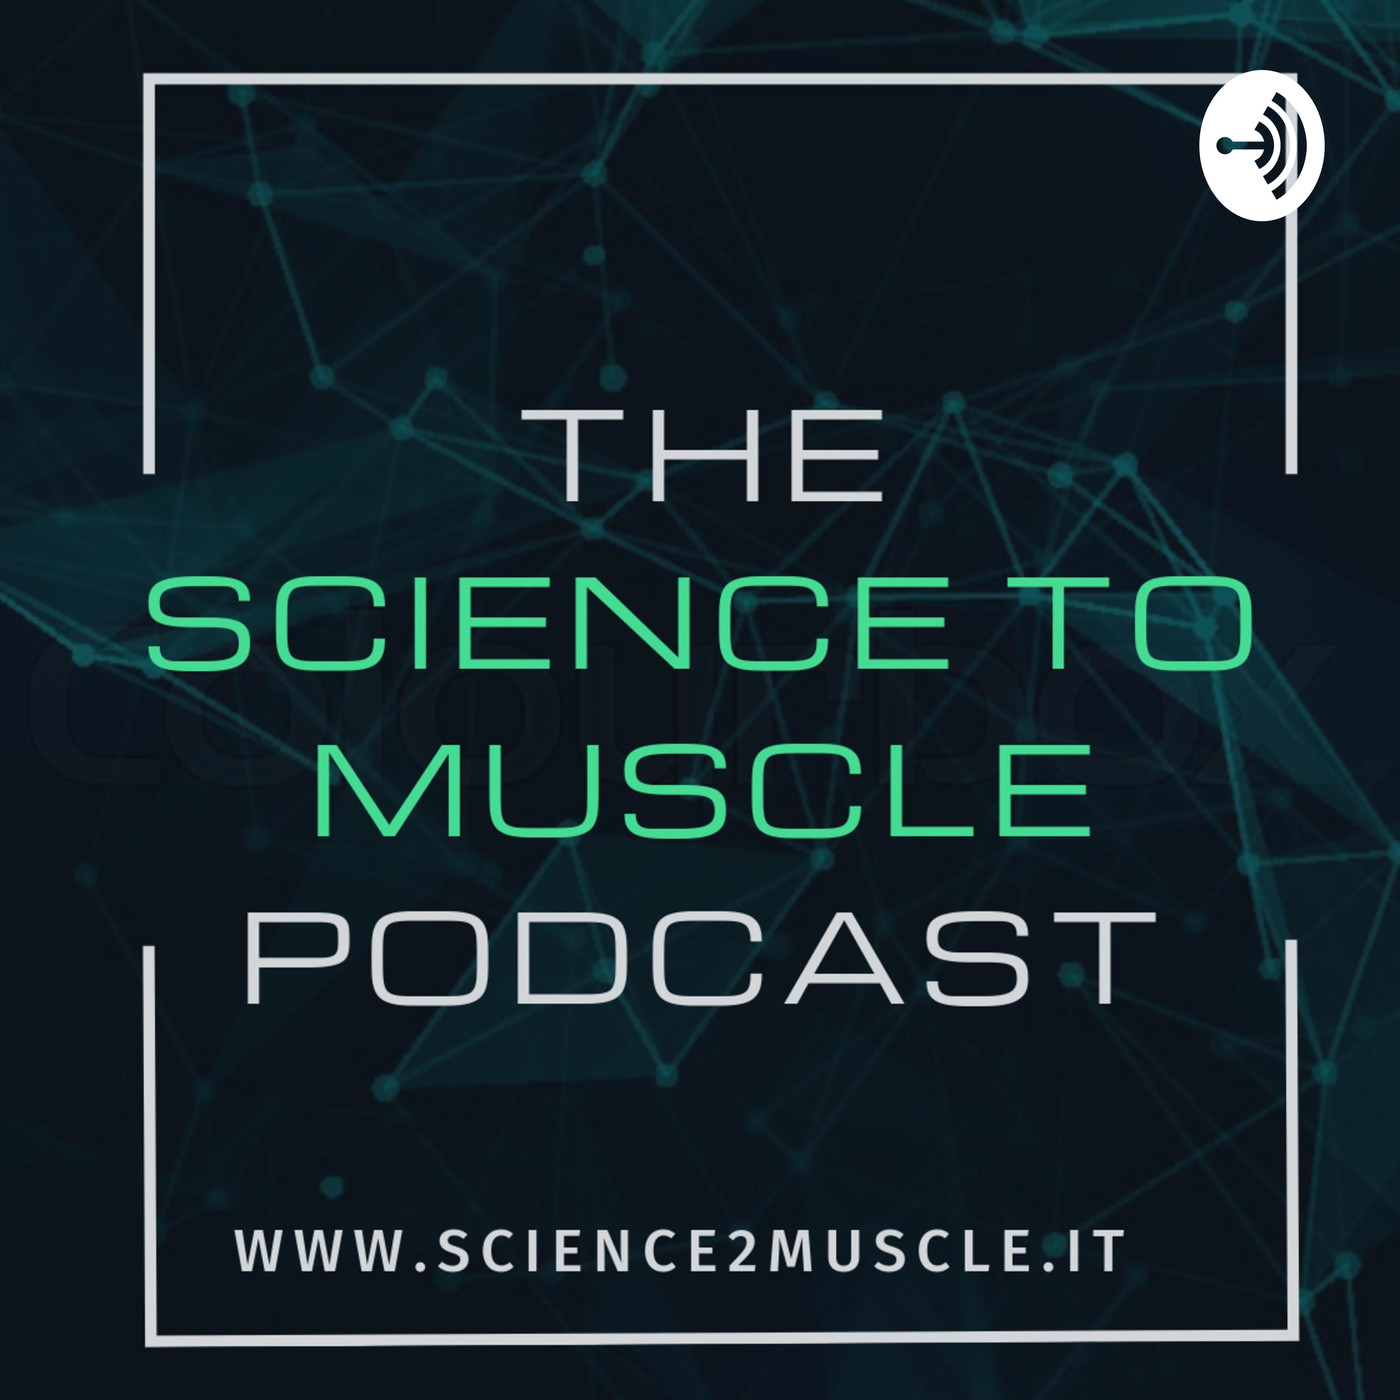 Ep.18 - Gary McGowan aka Skinnygaz - Productivity and behaviour change, being evidence based and stay unbiased